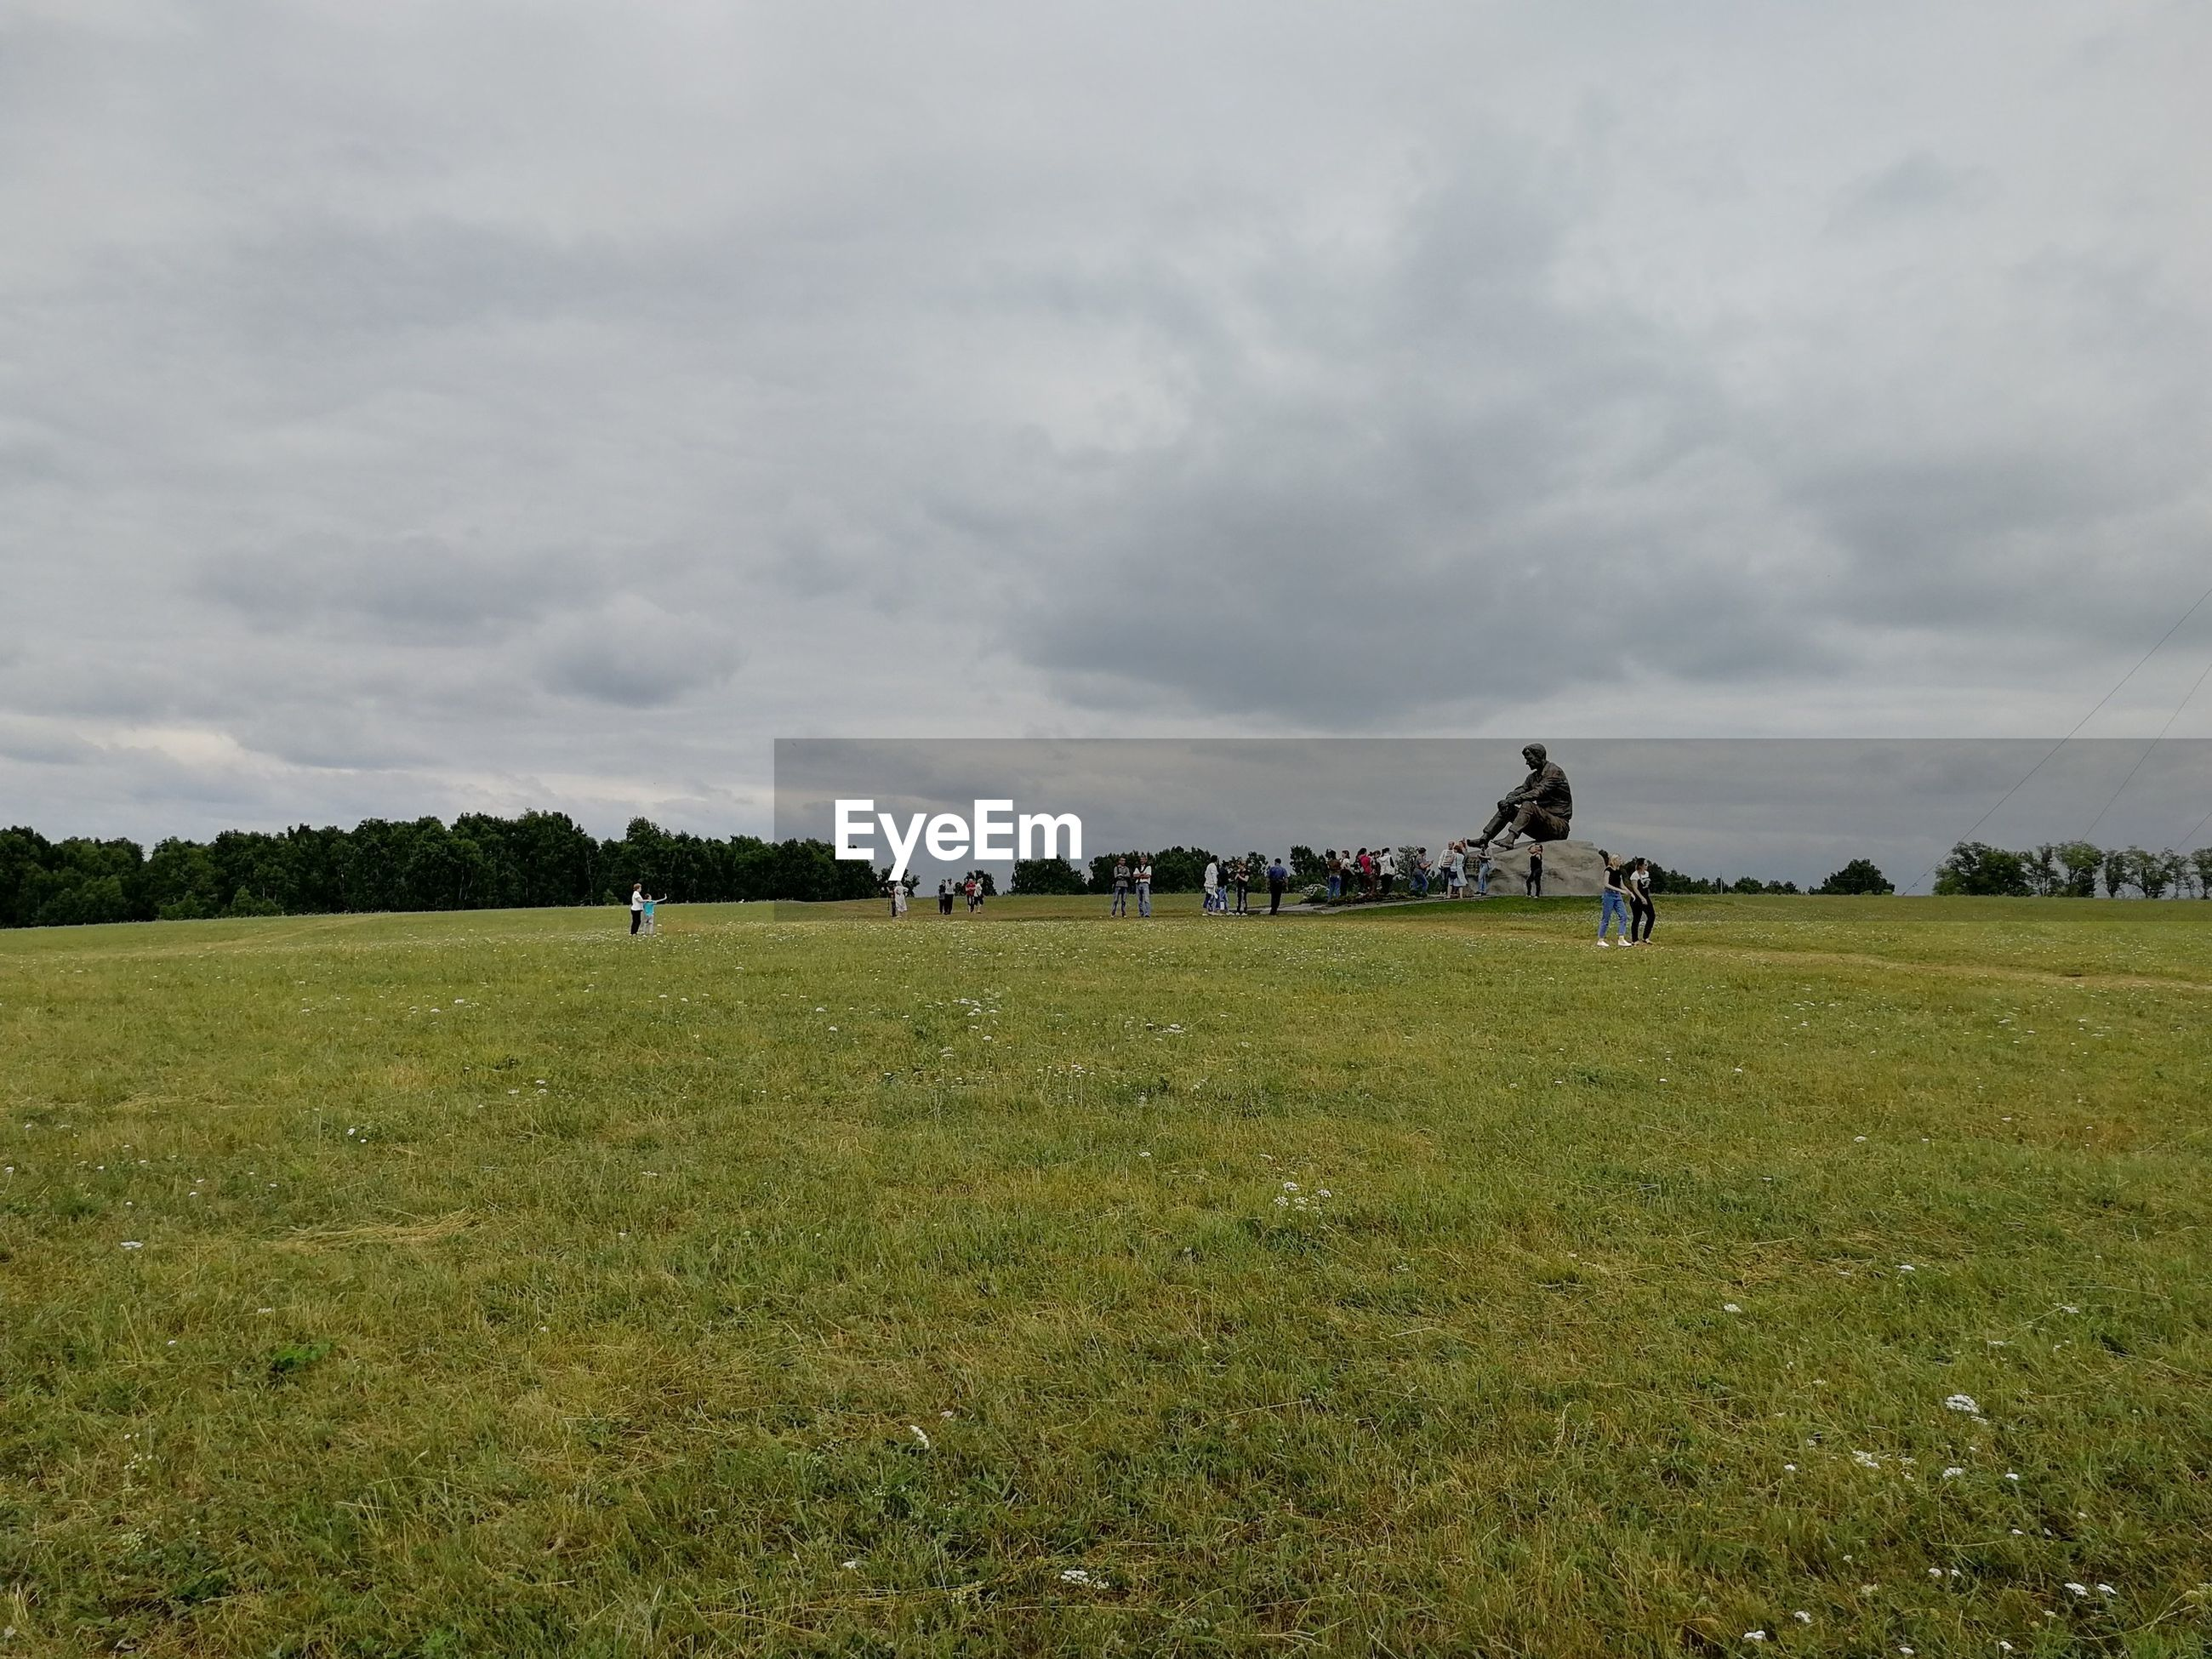 People on grassy field against cloudy sky at park